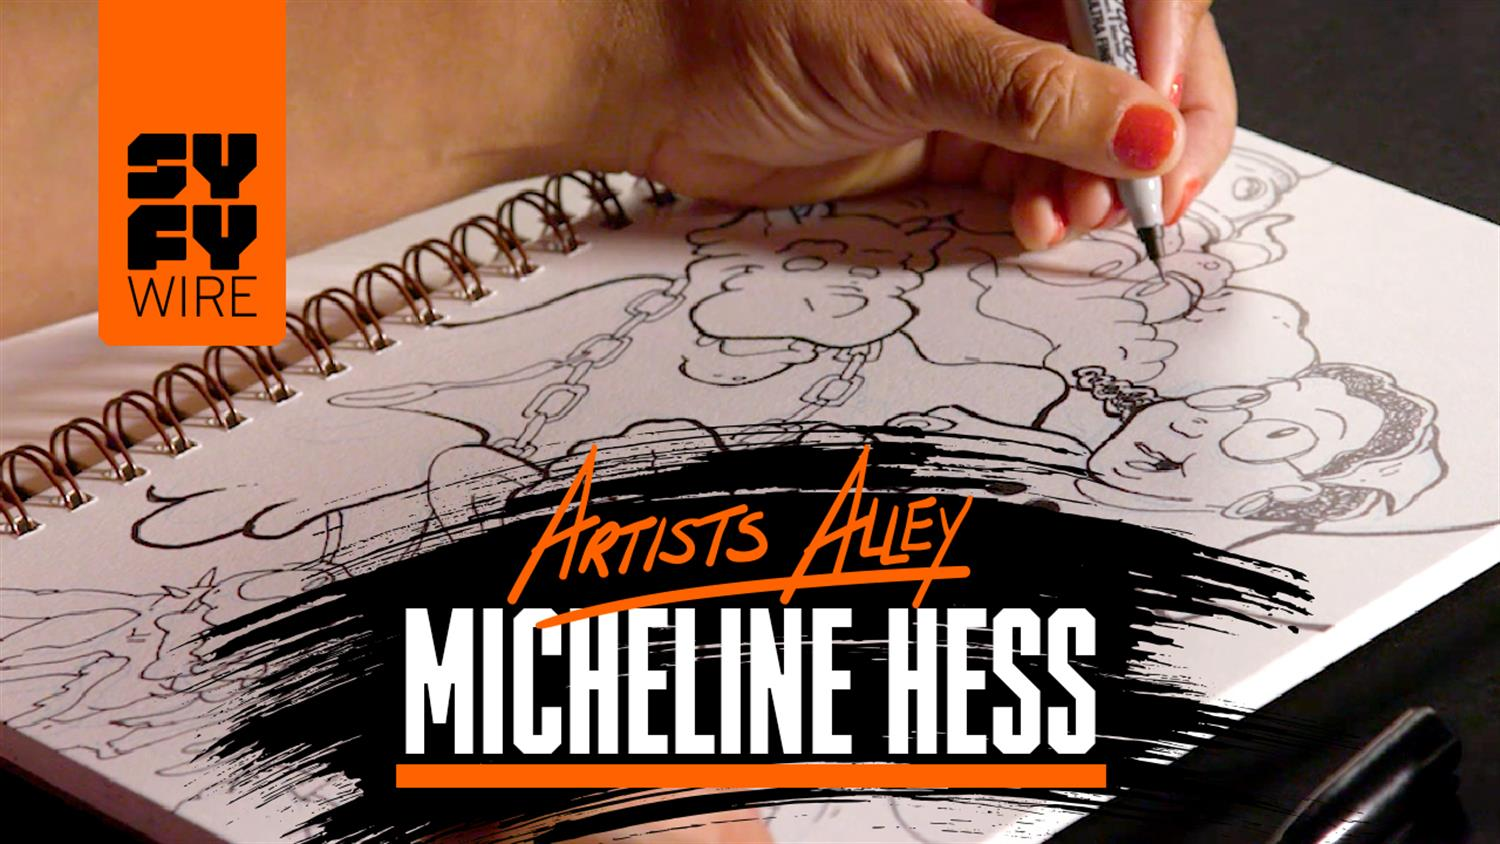 Watch Micheline Hess Sketch Malice in Ovenland (Artists Alley)